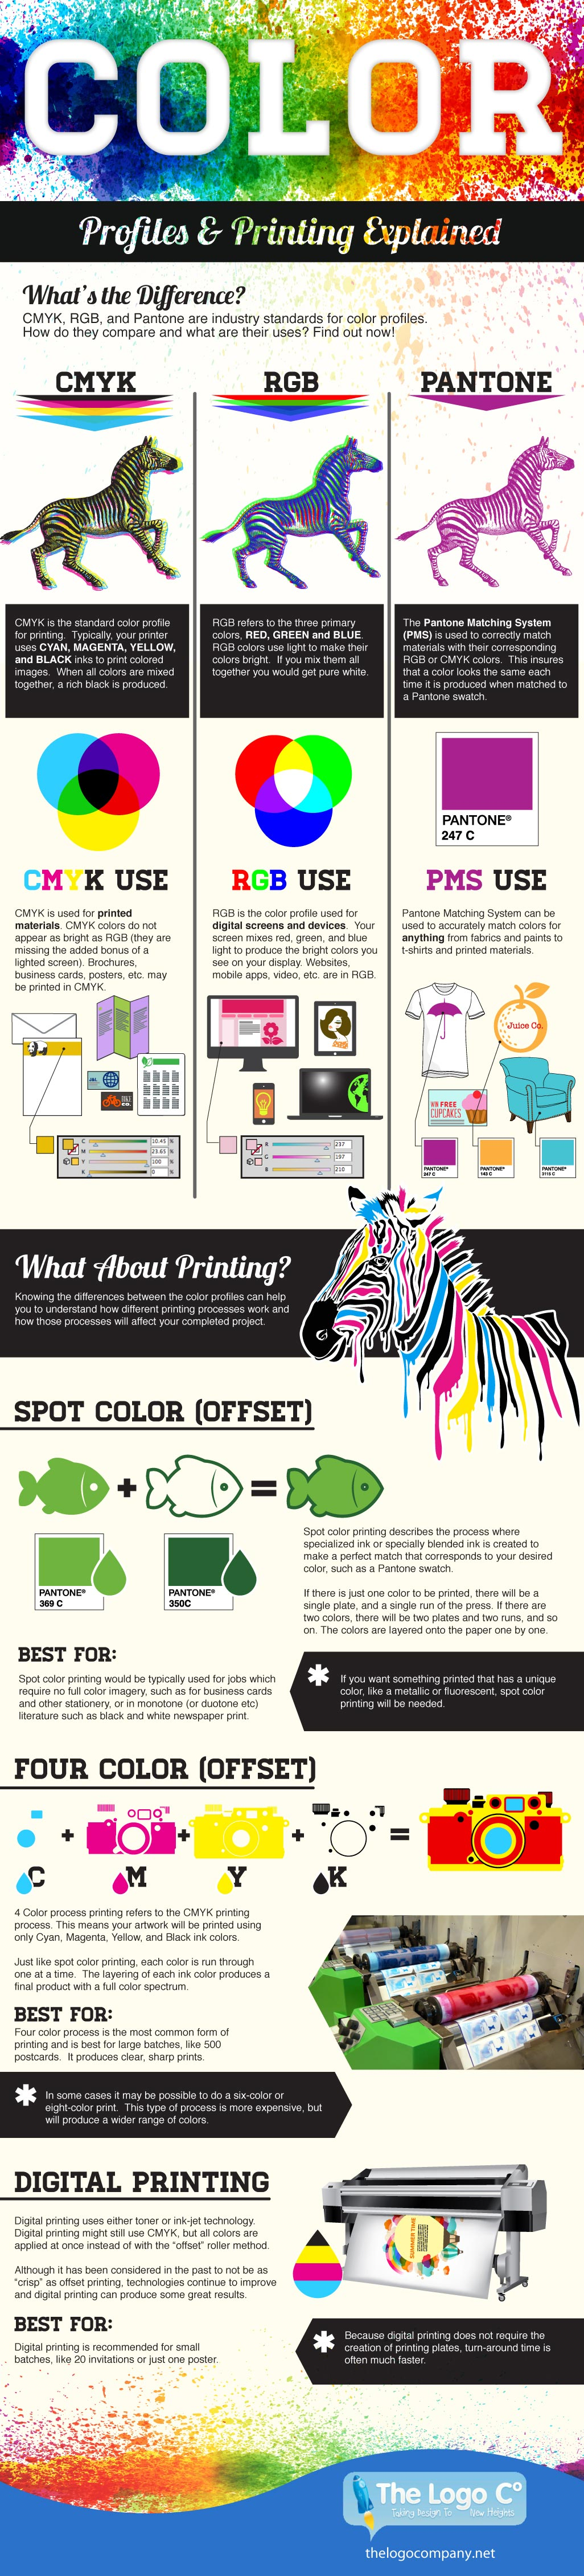 color-printing-infographic